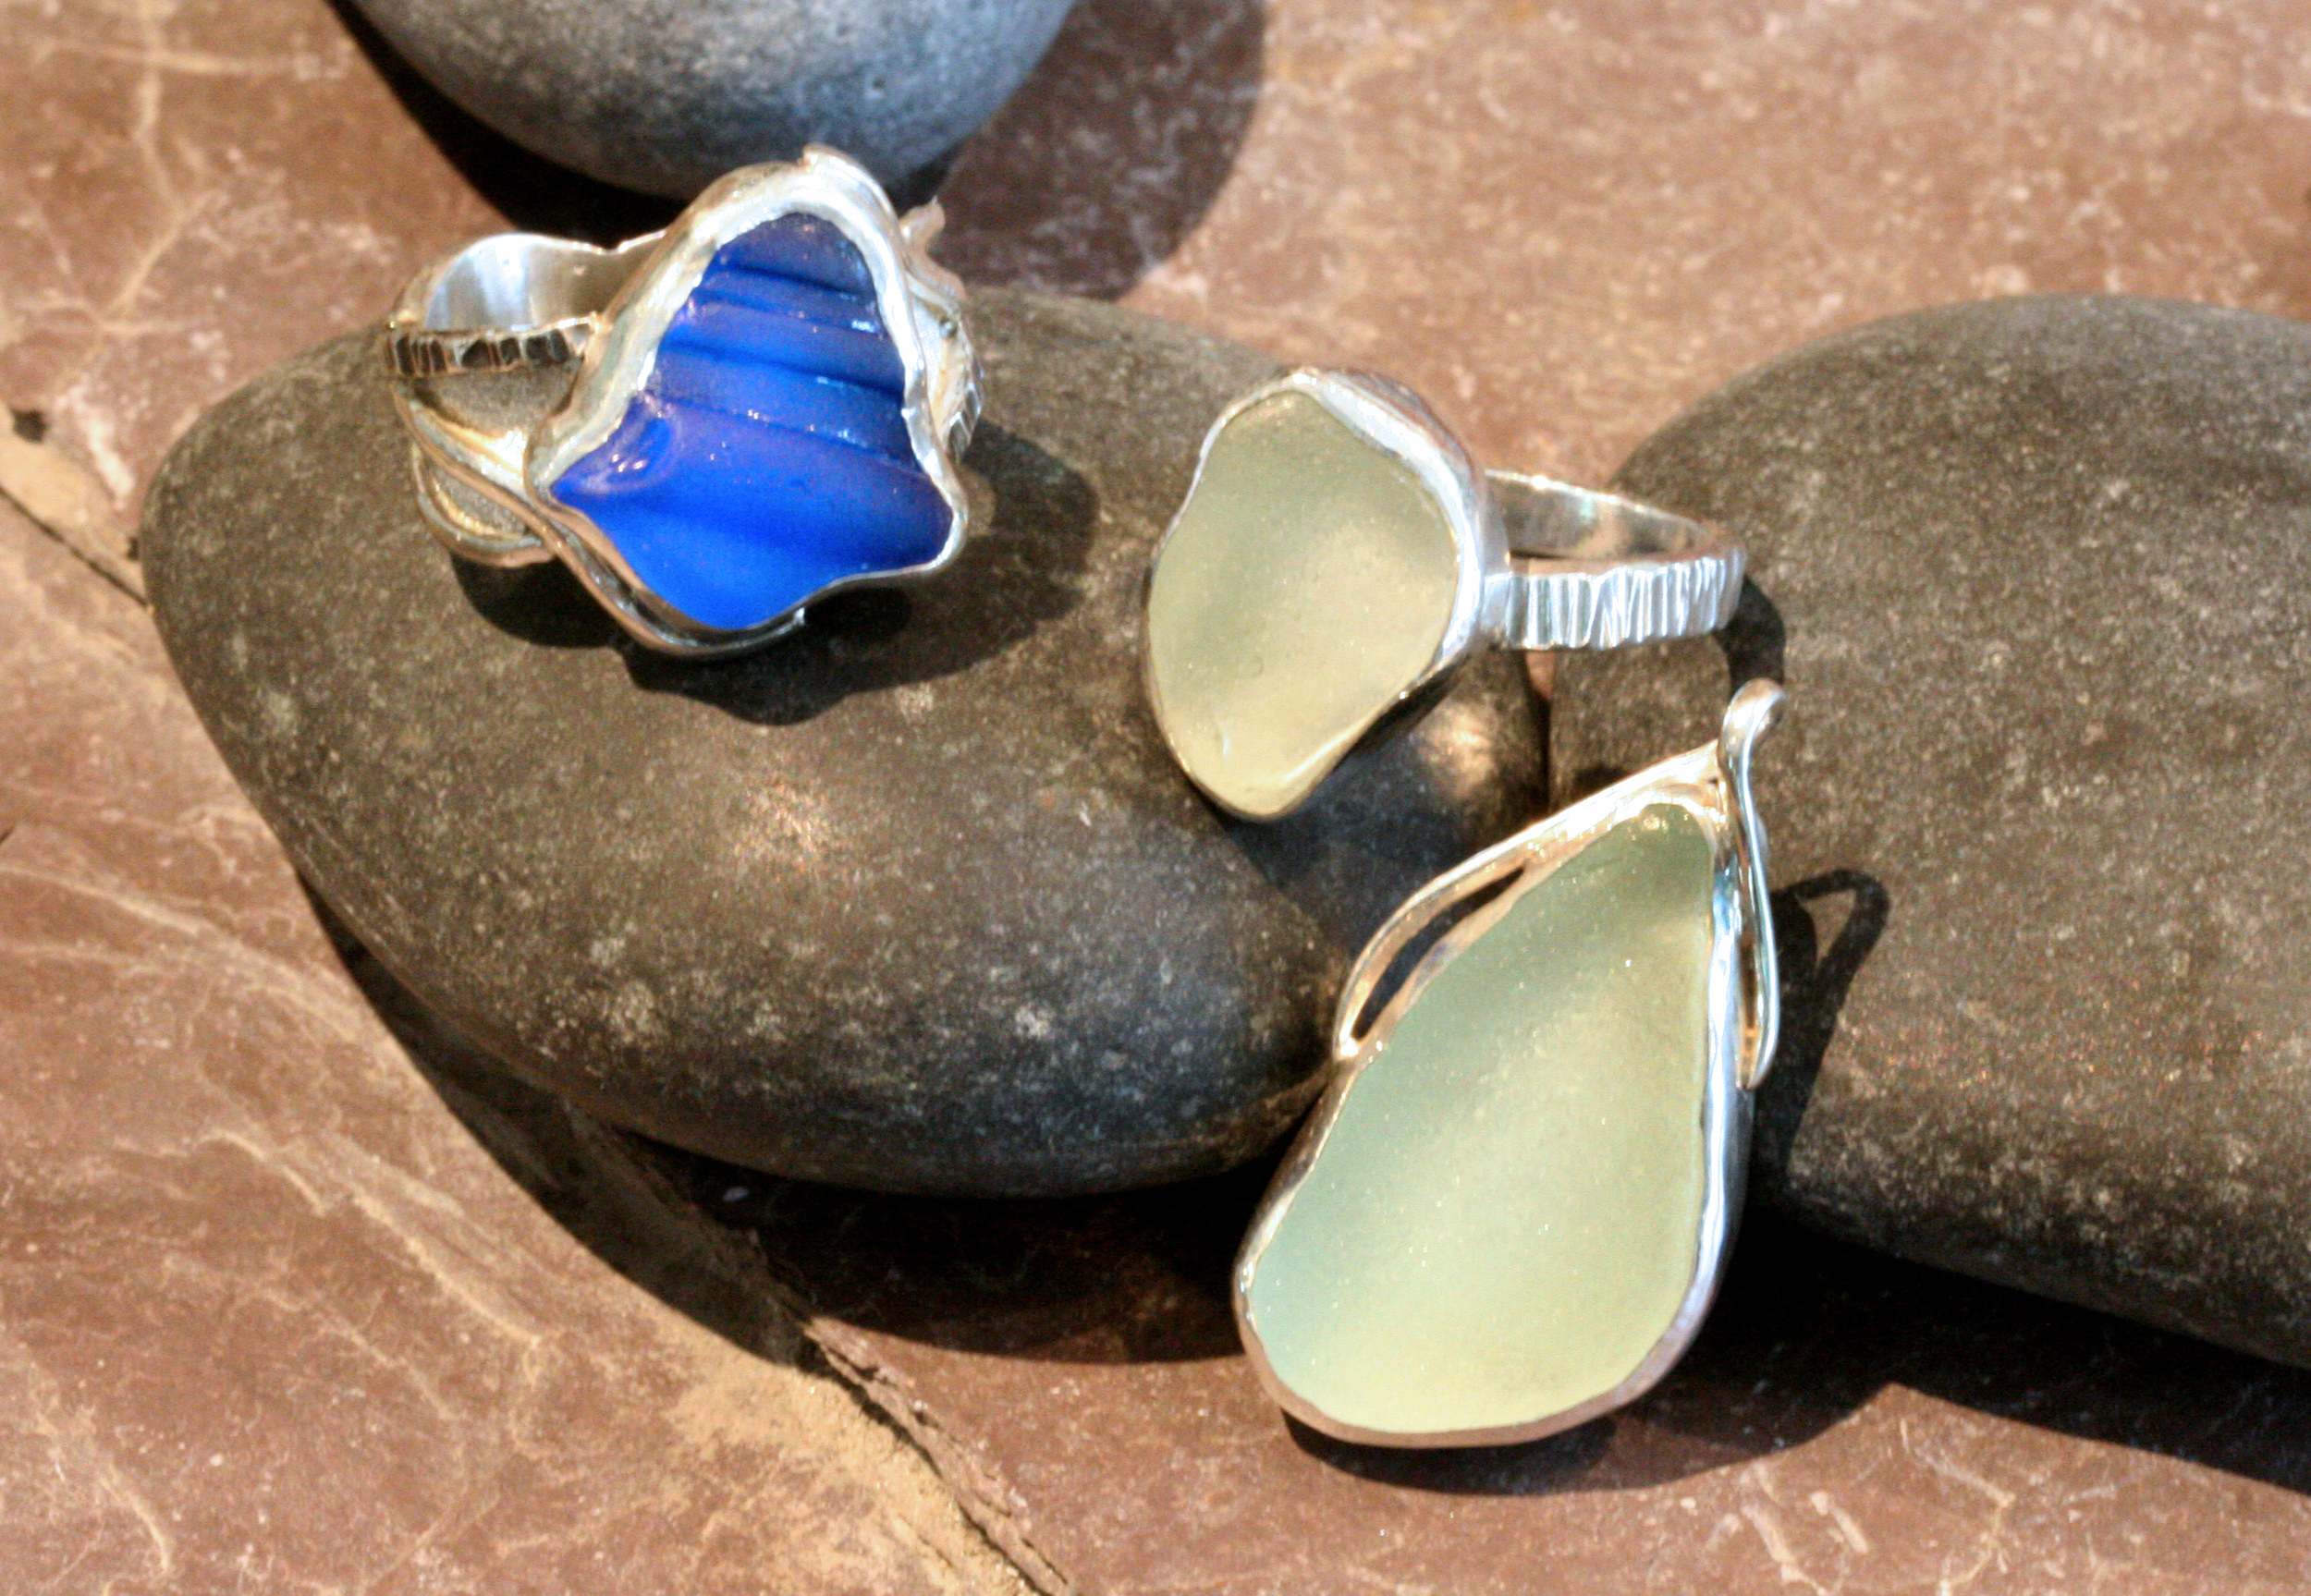 Sterling silver seaglass rings and pendant.